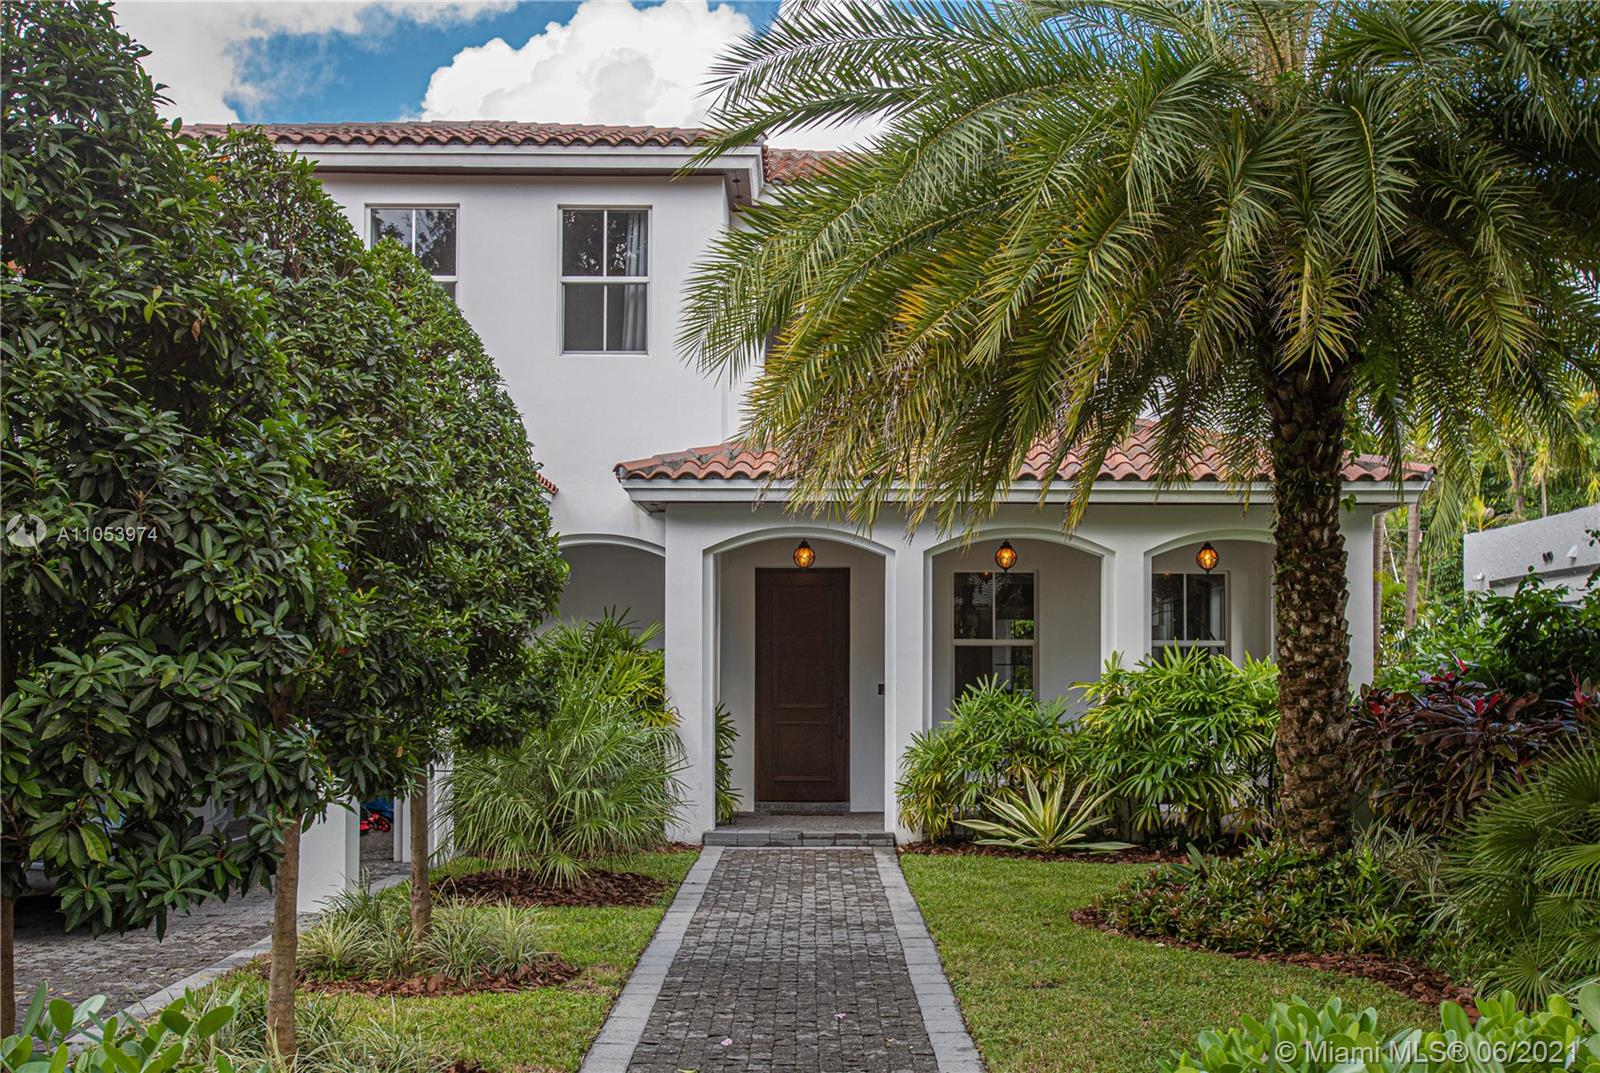 SPECTACULAR HOME  in the heart of Coral Gables, nearby historic Granada Golf Course and the famous Biltmore Hotel, this 5 bedroom and 4 bathroom house is located on a beautiful quiet street, near great schools and the Miracle Mile district. This luxurious and comfortable house has an open kitchen floor plan with plenty of natural light all around, and a great pool with spa. No details spared. Furnished for sale.